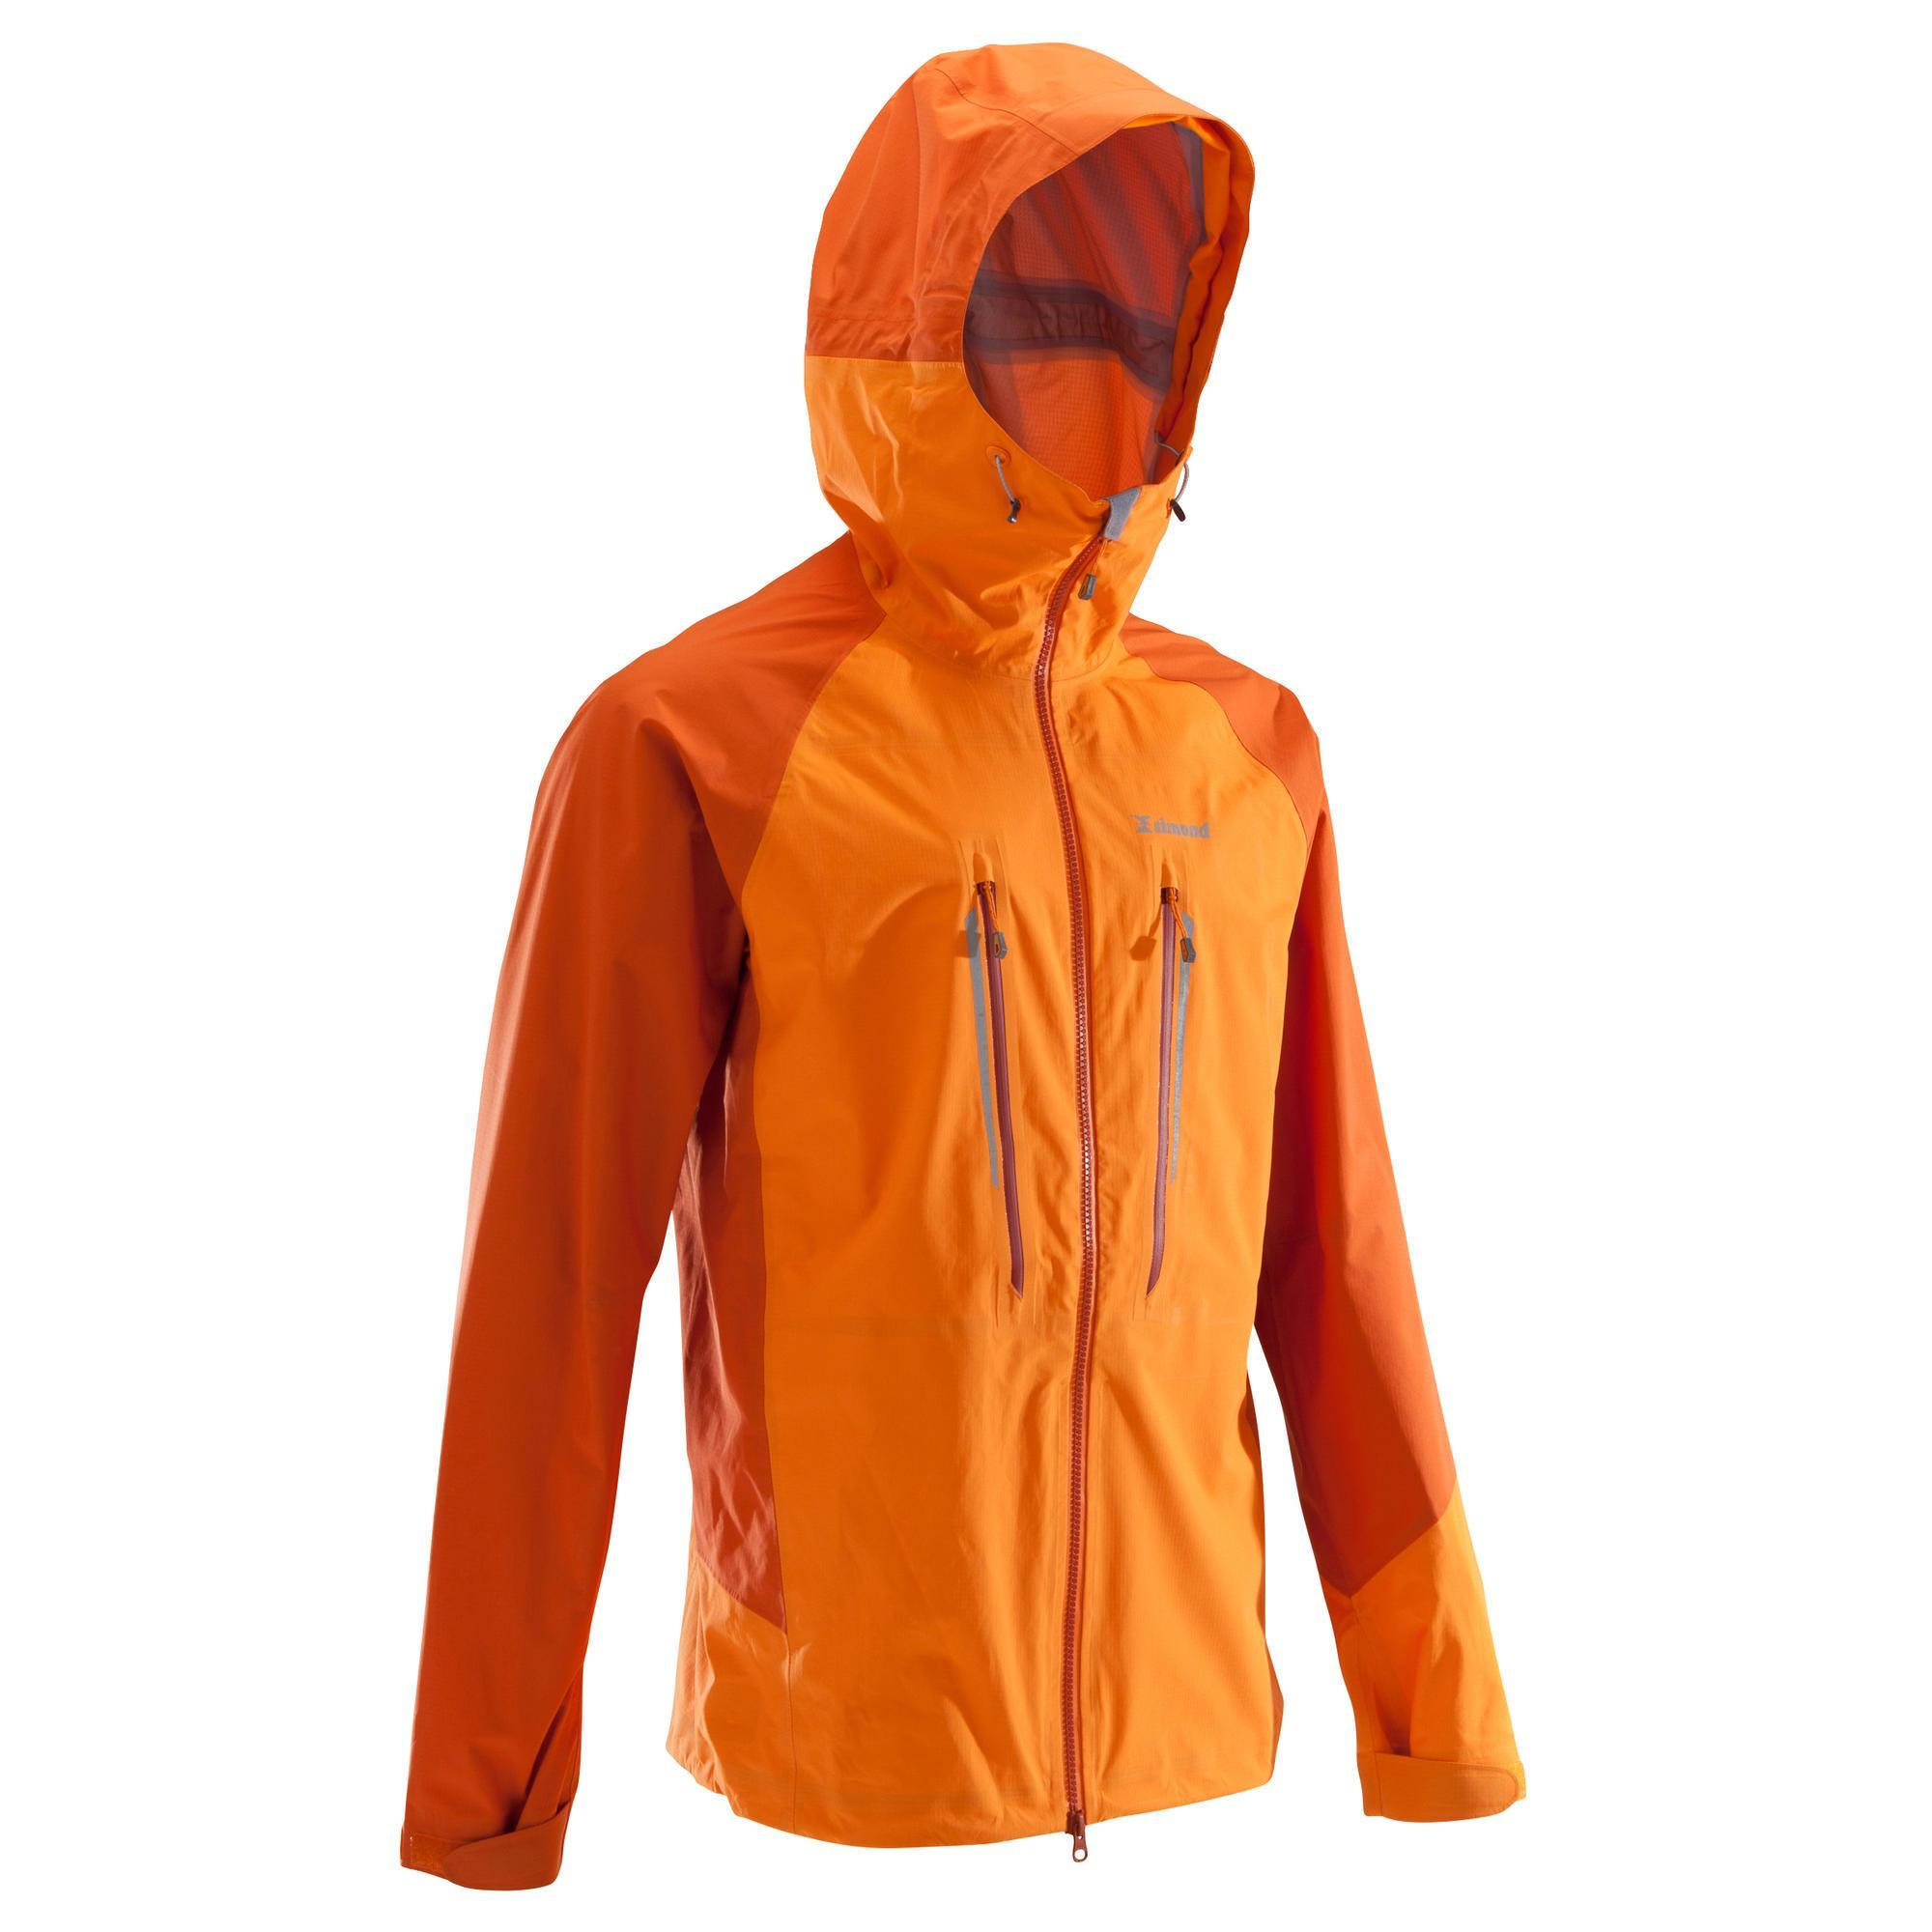 Jacke Alpinism light Herren orange | Bekleidung > Jacken > Sonstige Jacken | Orange | Simond